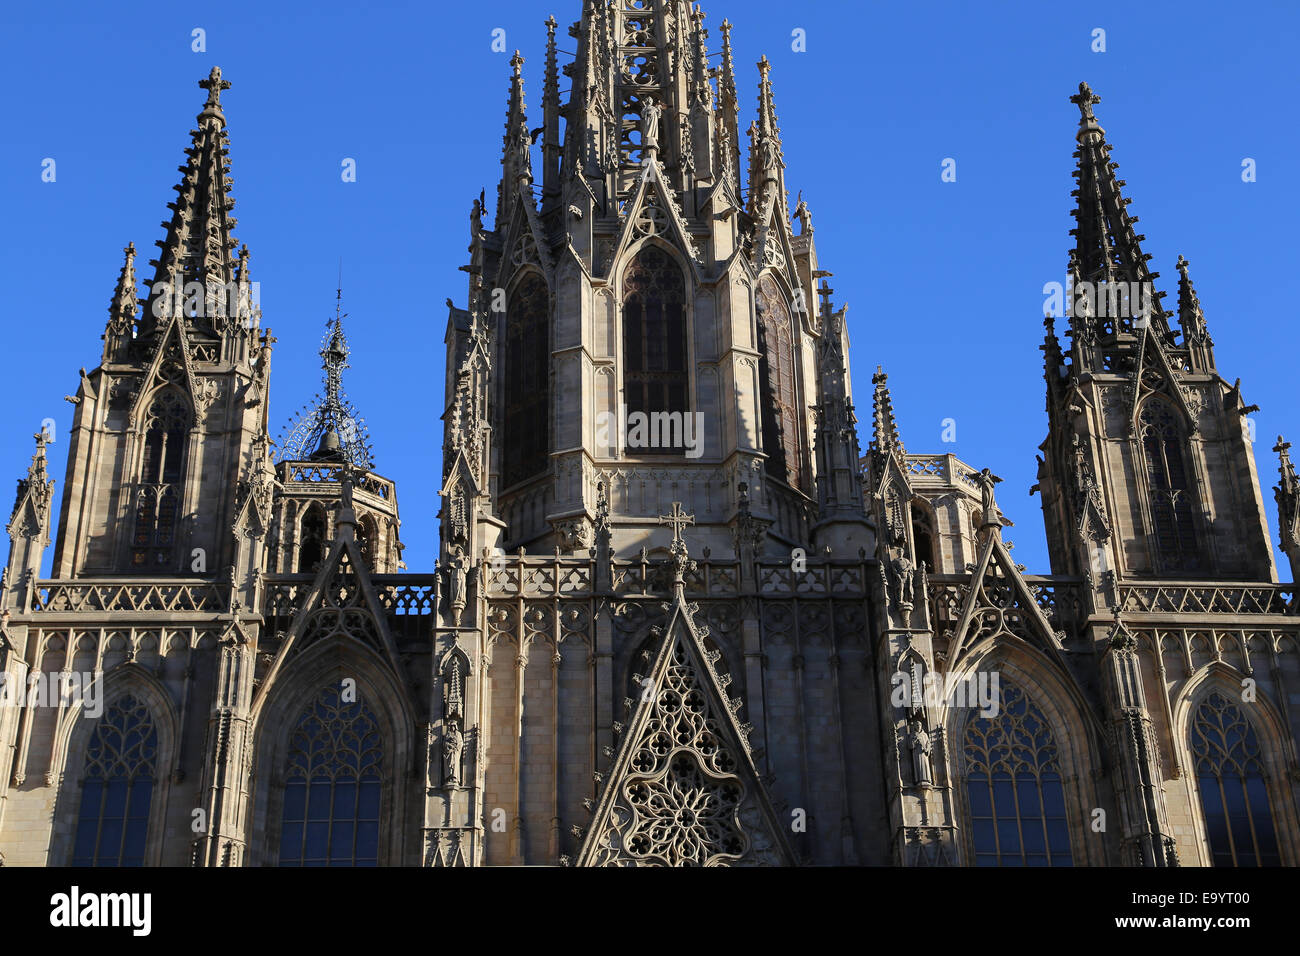 Spain. Catalonia. Barcelona Cathedral. Exterior. Facade Neo-gothic. 19th century. - Stock Image